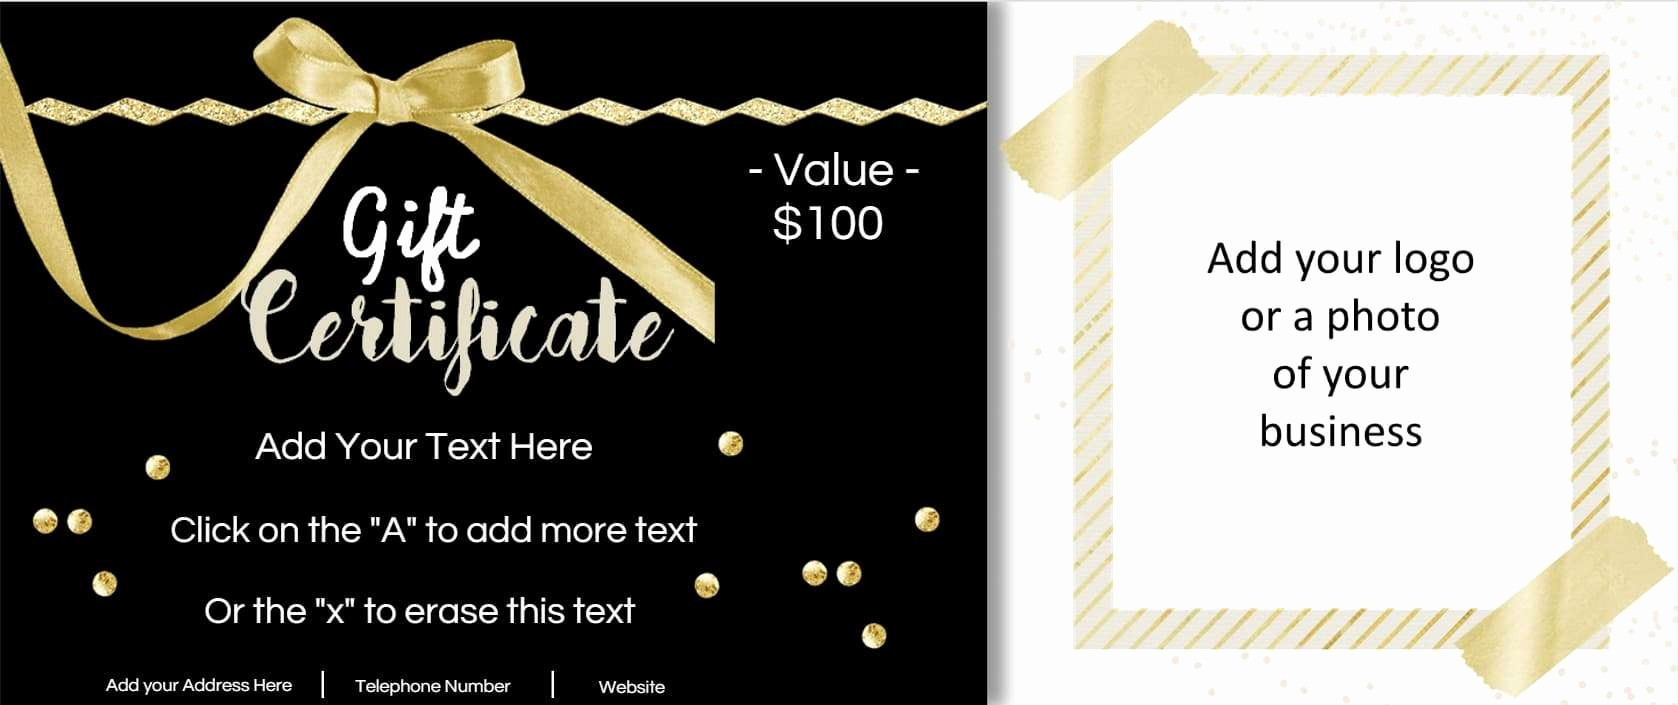 How to Make Gift Certificate Luxury Gift Certificate Template with Logo